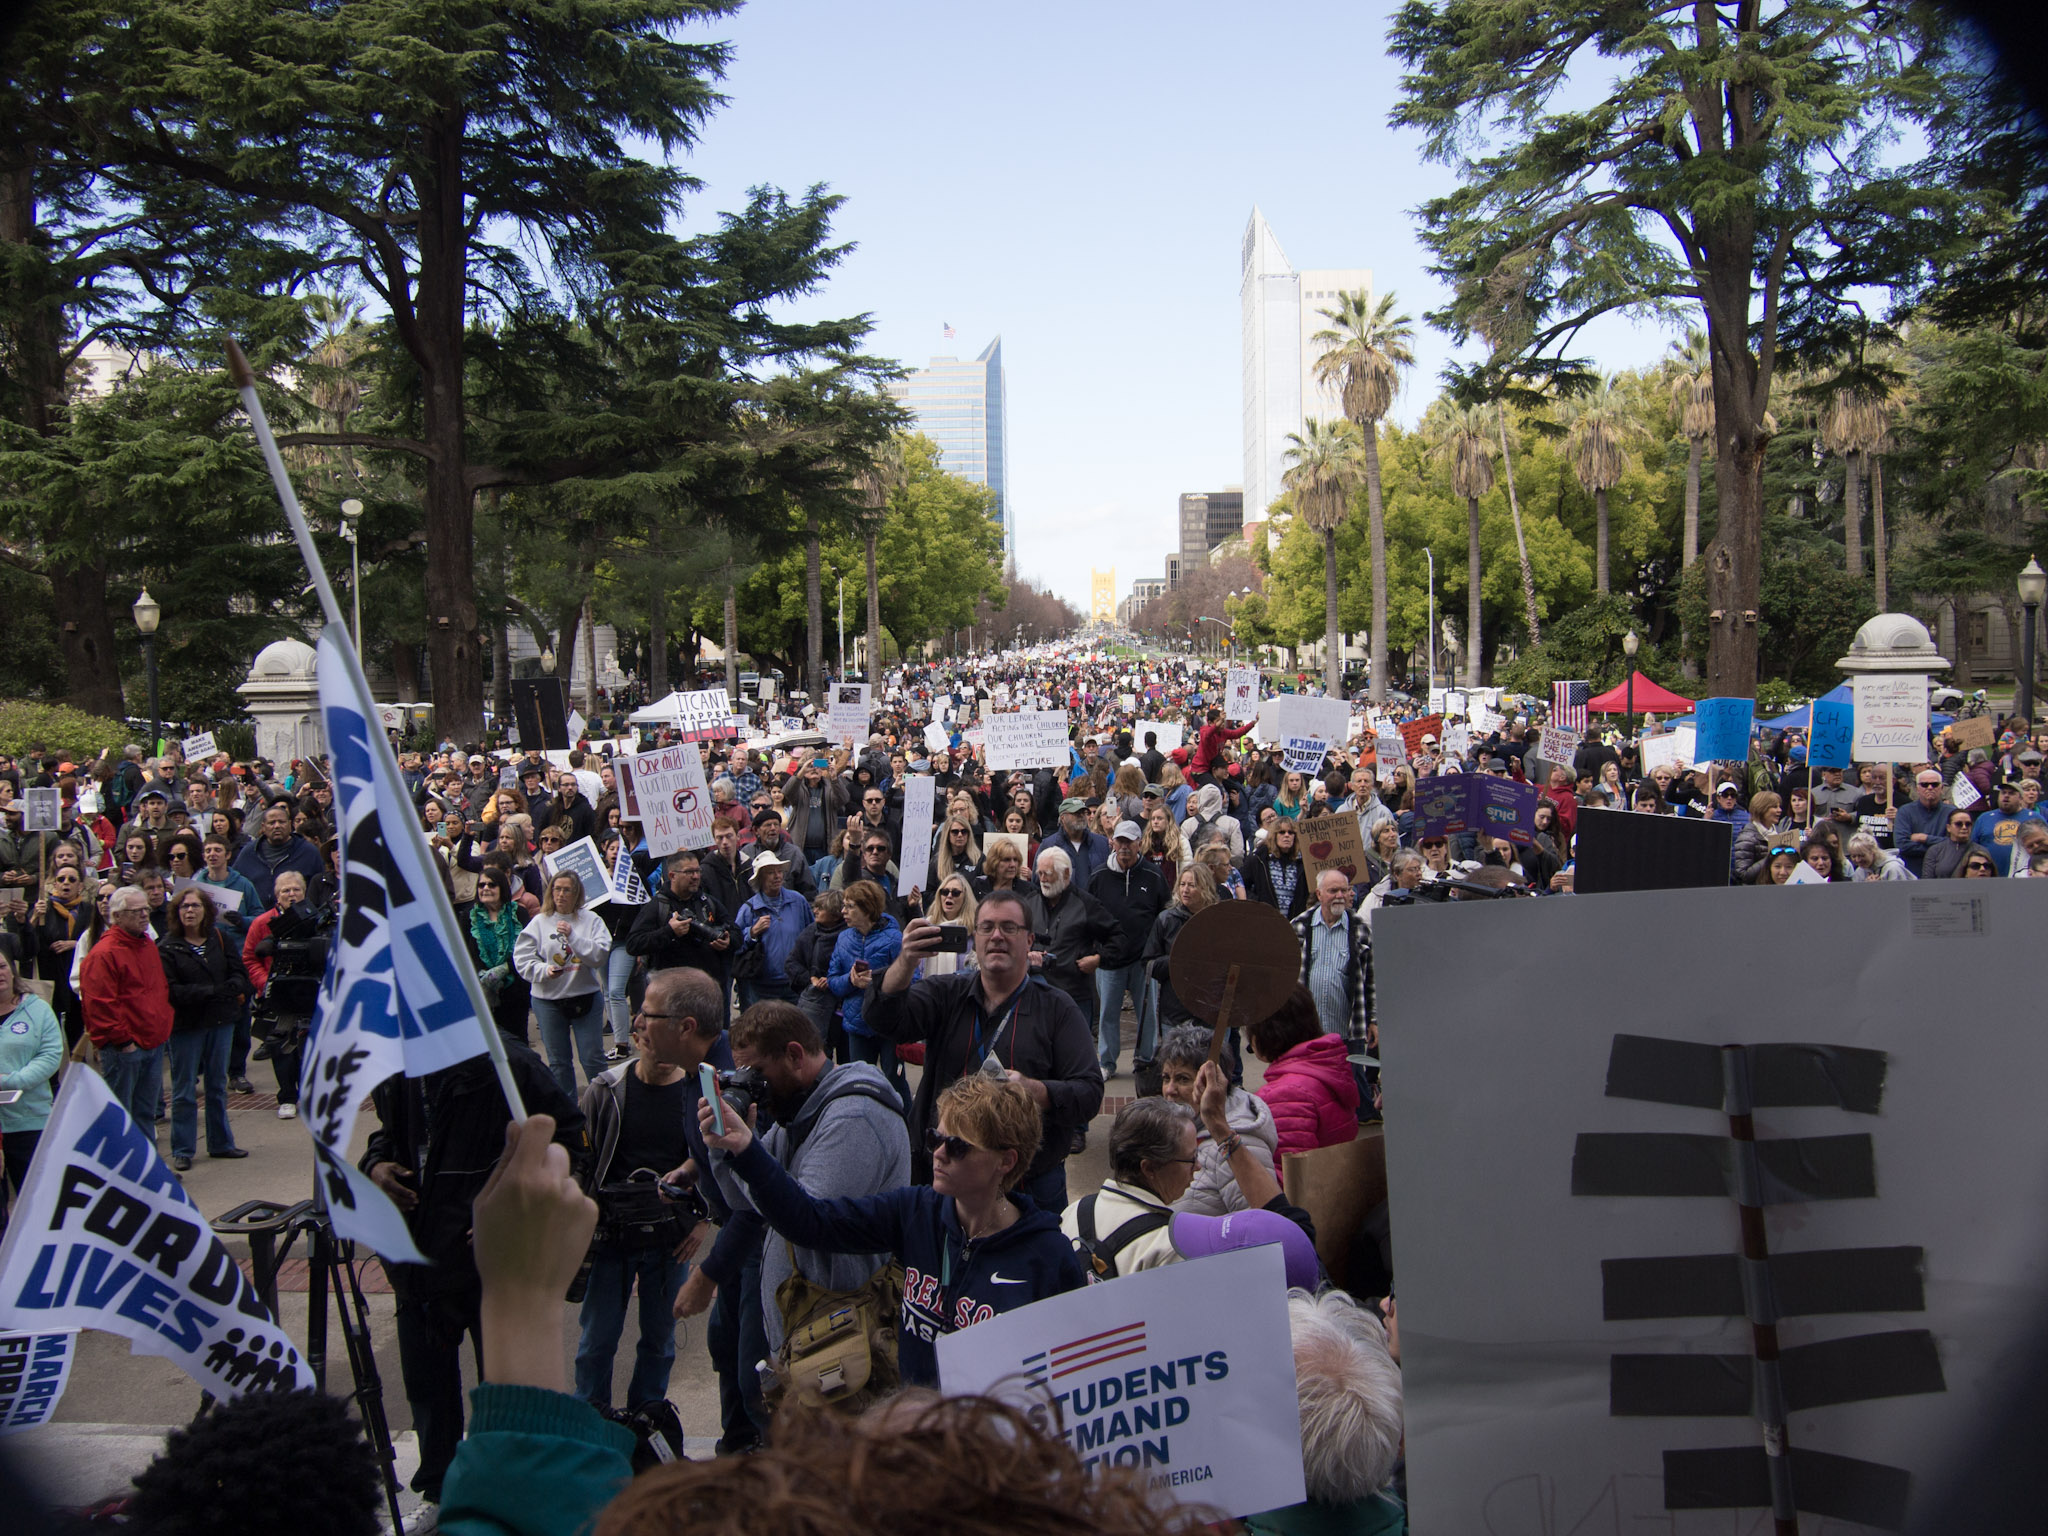 March for our lives crowd 2.jpg